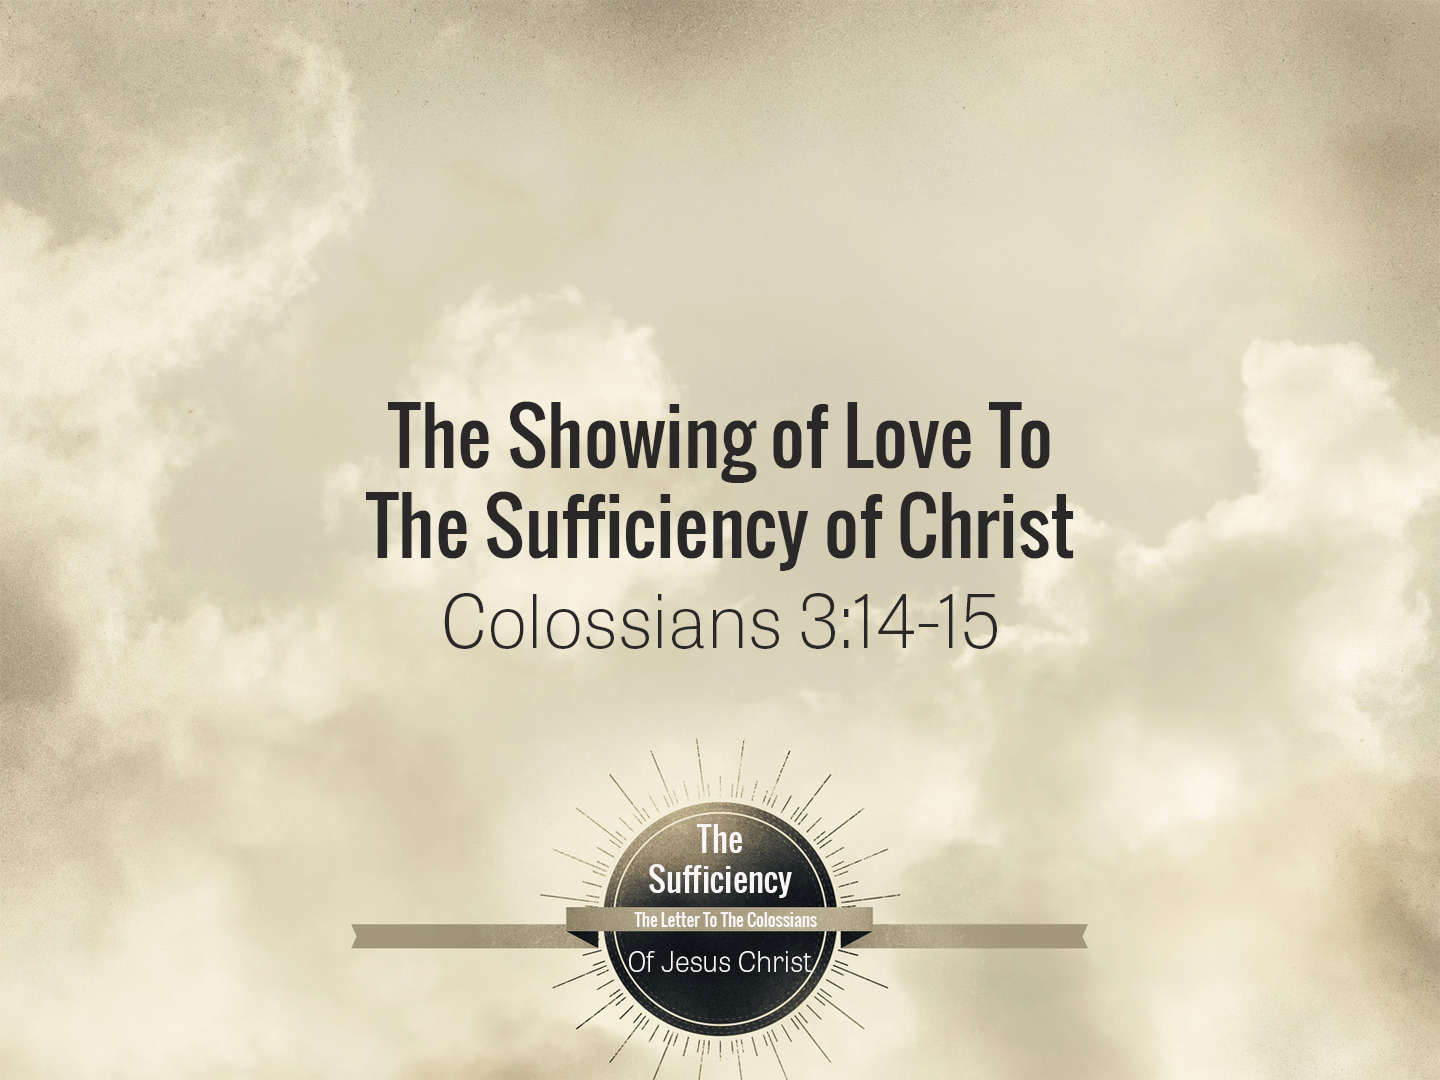 Colossians 3:14-15 The Showing Of Love To The Sufficiency Of Christ